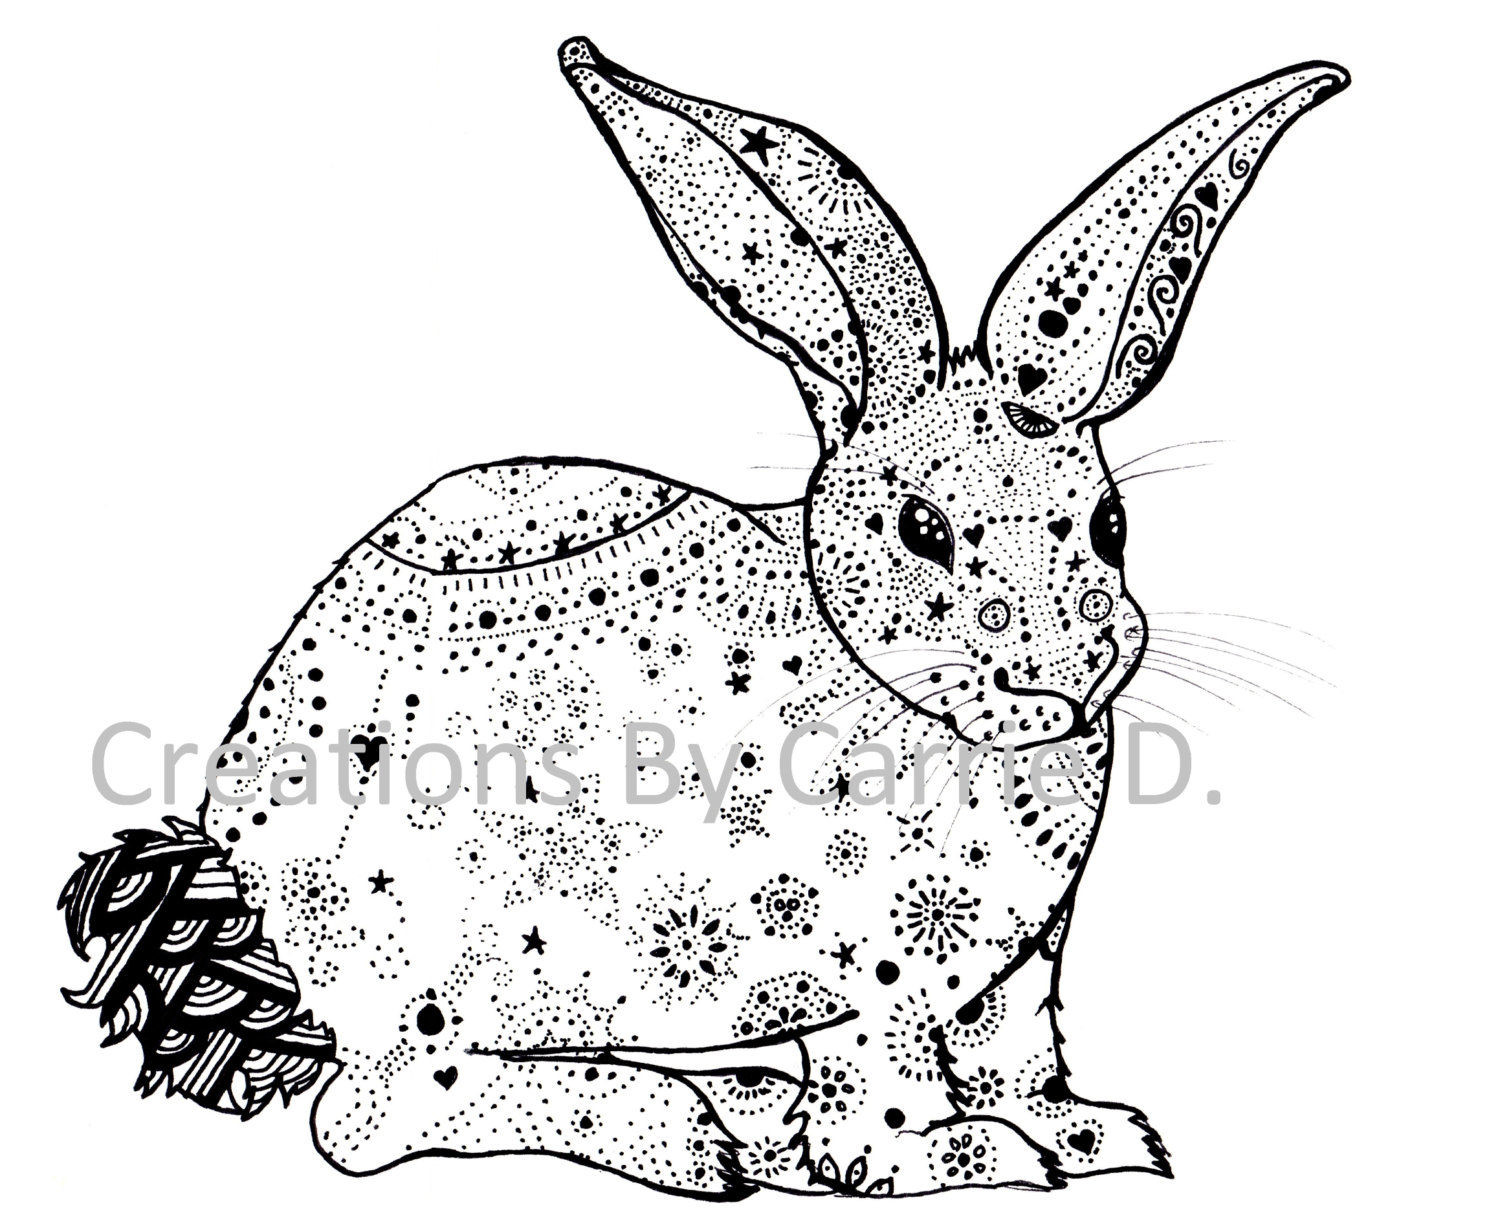 Drawn rabbit template And White Art Rabbit Pen